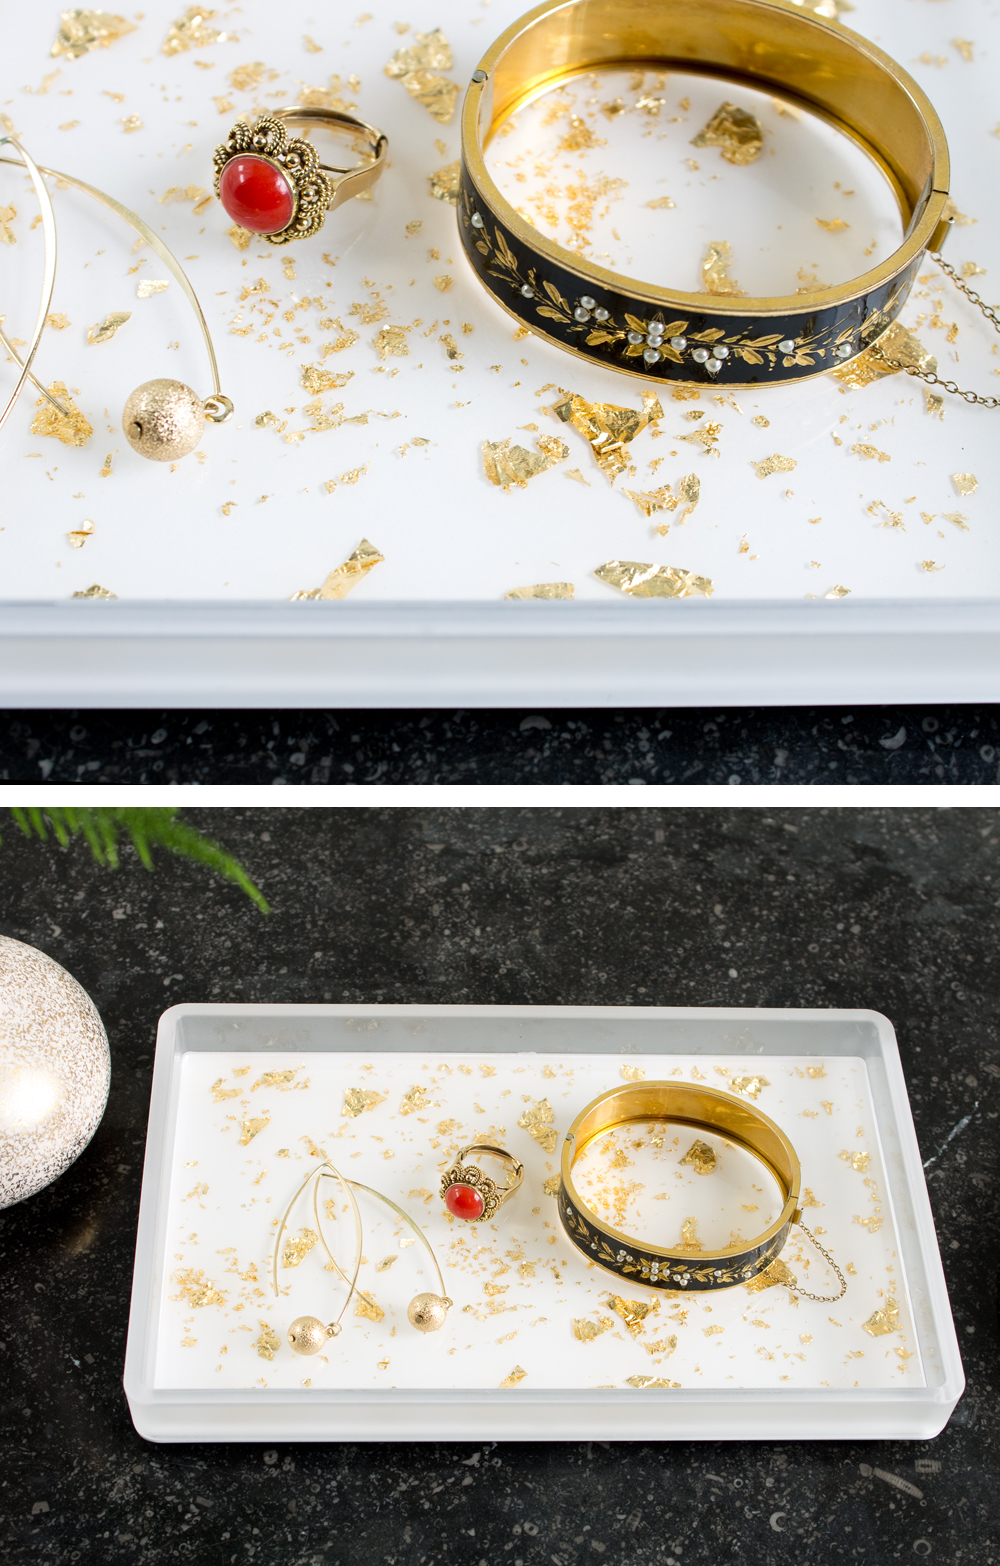 DIY Gold Flecked Tray | Full tutorial at www.vitaminihandmade.com